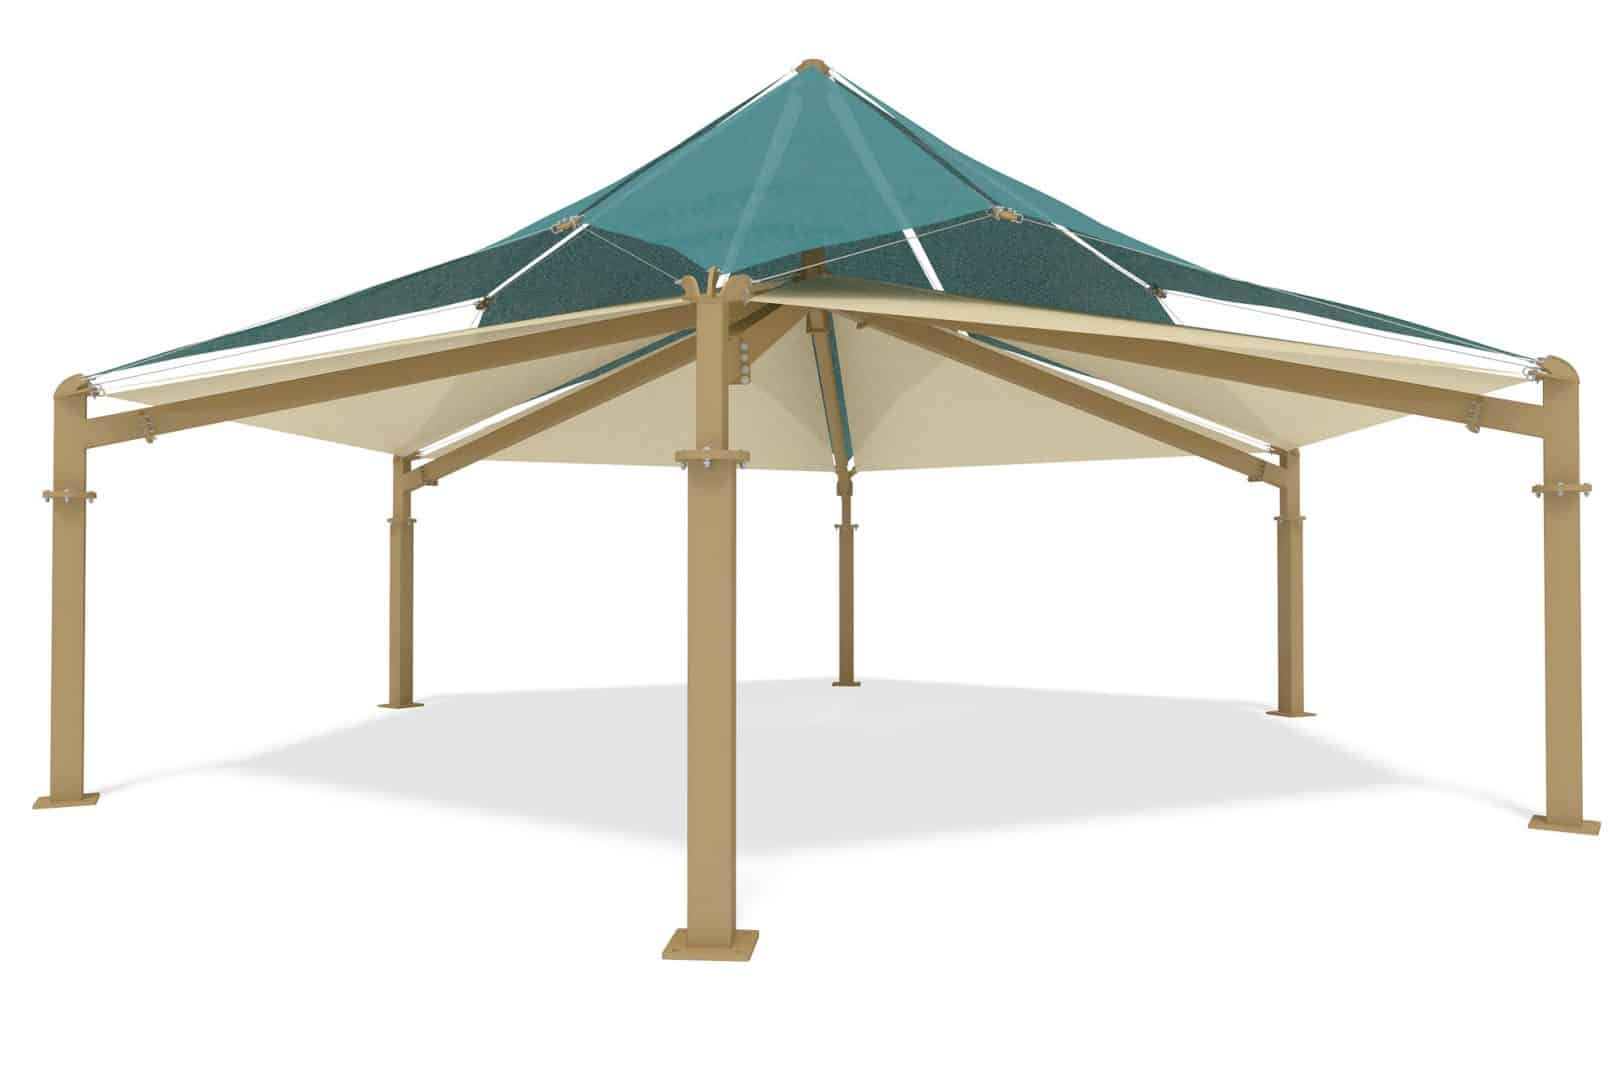 Skyways fabric shade structures general recreation inc for Shade structures